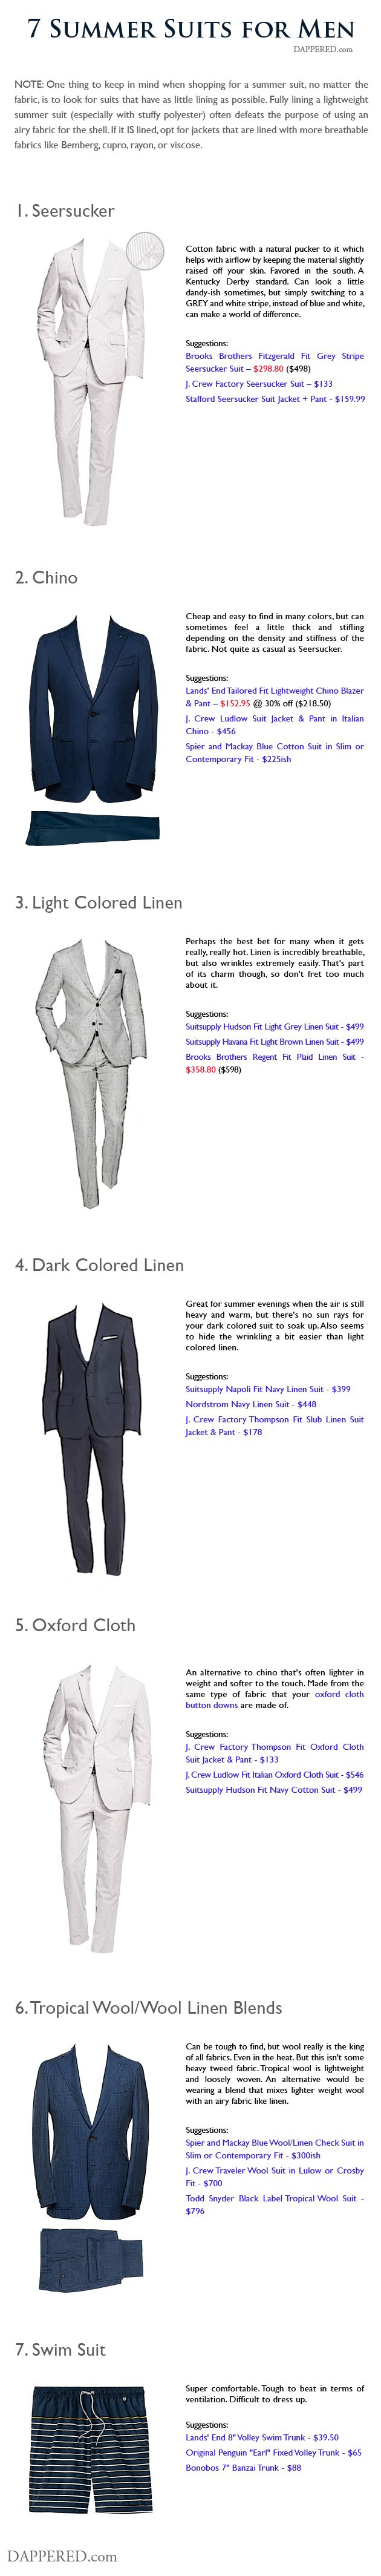 The 7 Types of Summer Suits for Men | Dappered.com